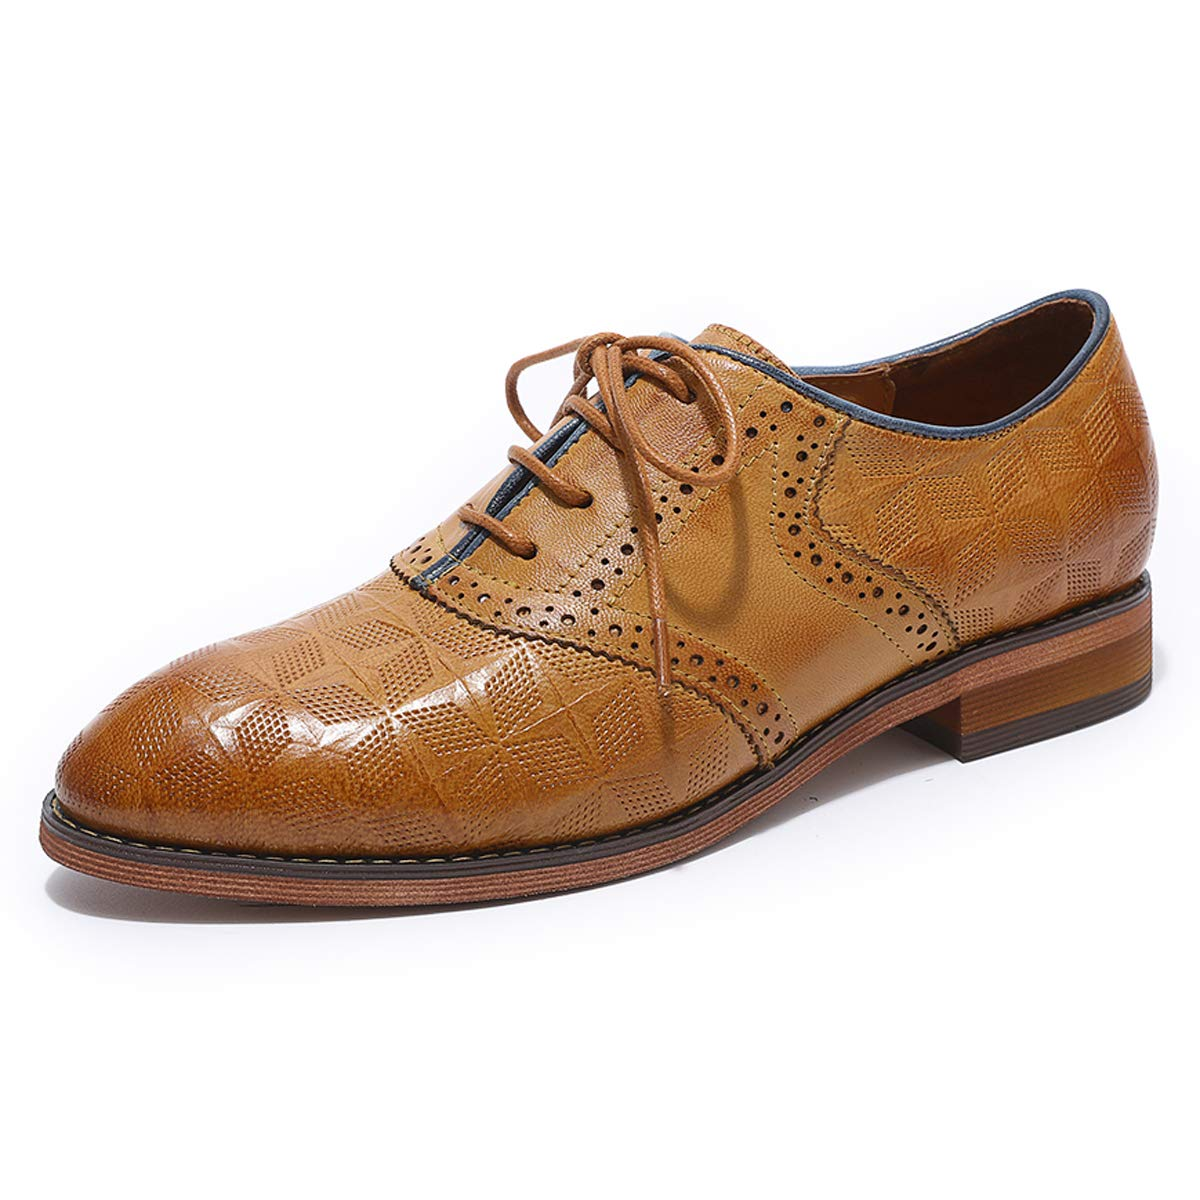 855bd21516 MIKCON Womens Oxfords Shoes Leather Perforated Wingtip Lace up Flats Saddle  Brogue Shoes for Womens Girls Brown